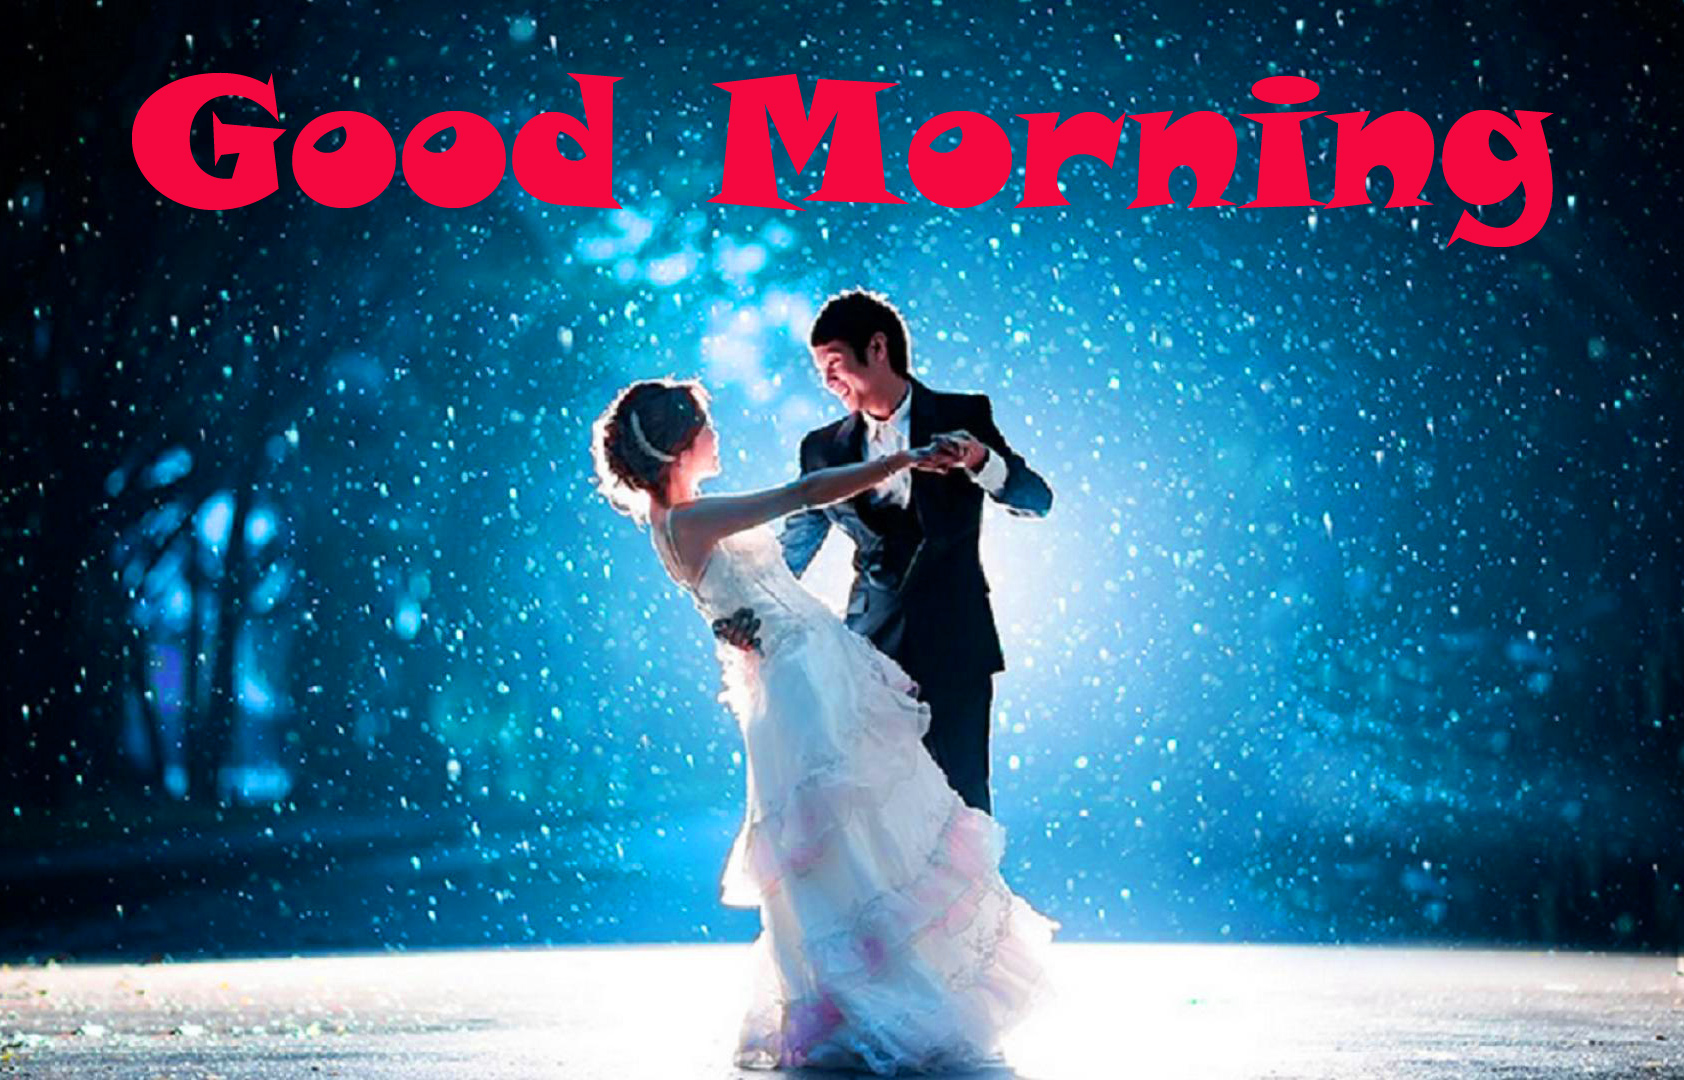 Good Morning Images Wallpaper Pics Download for Lover